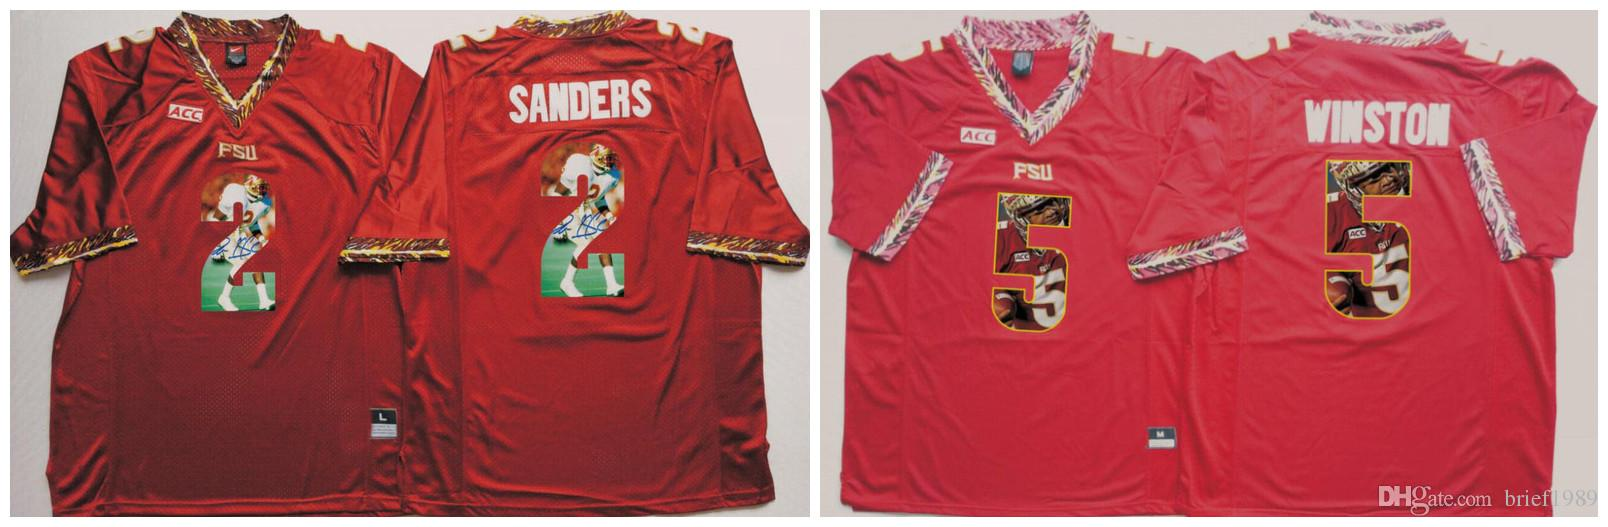 online store 67a23 f3768 youth ncaa jerseys florida state seminoles 2 deion sanders ...